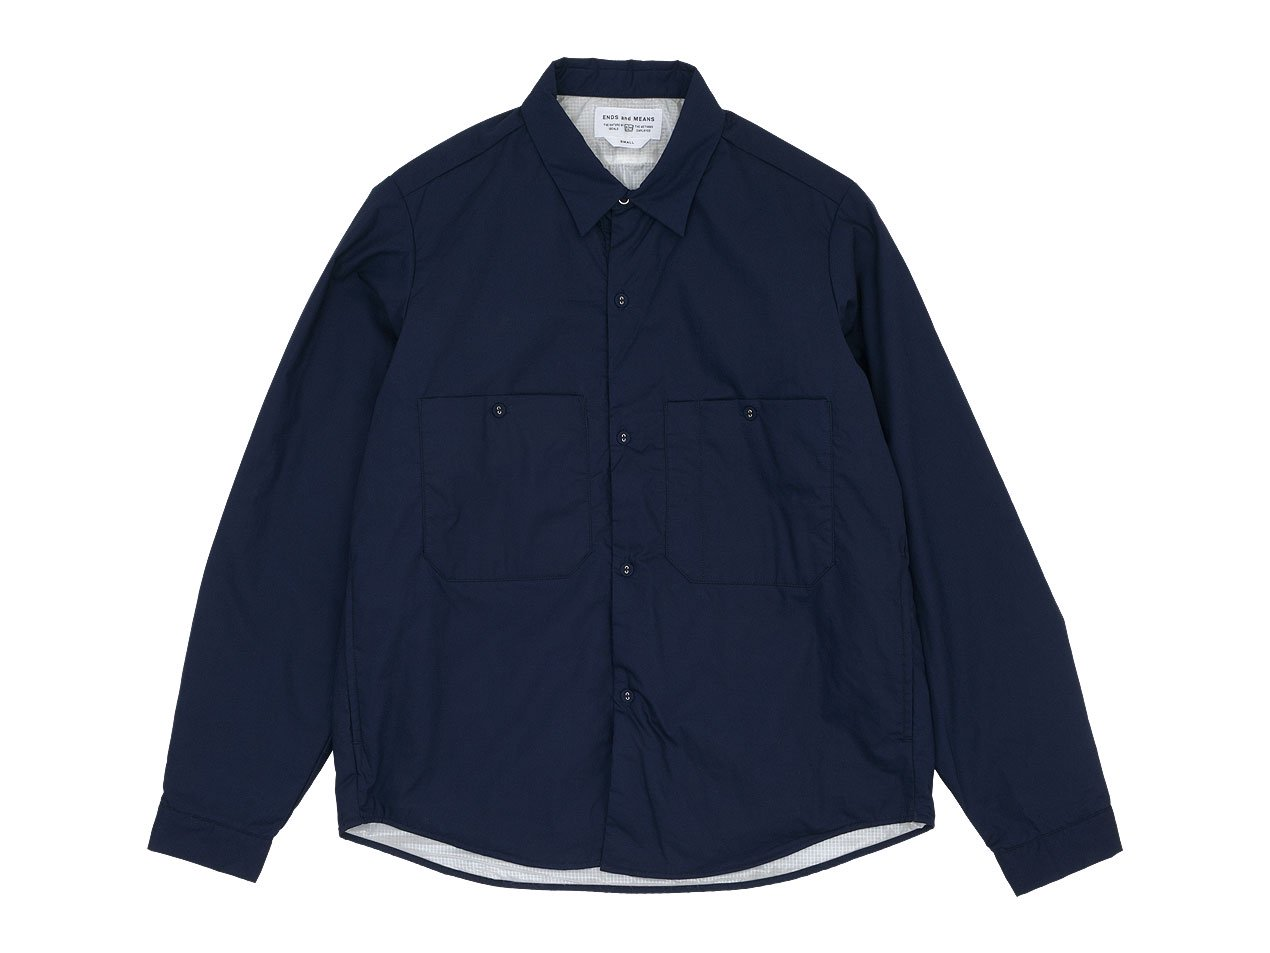 ENDS and MEANS Puff Shirts Jacket NAVY